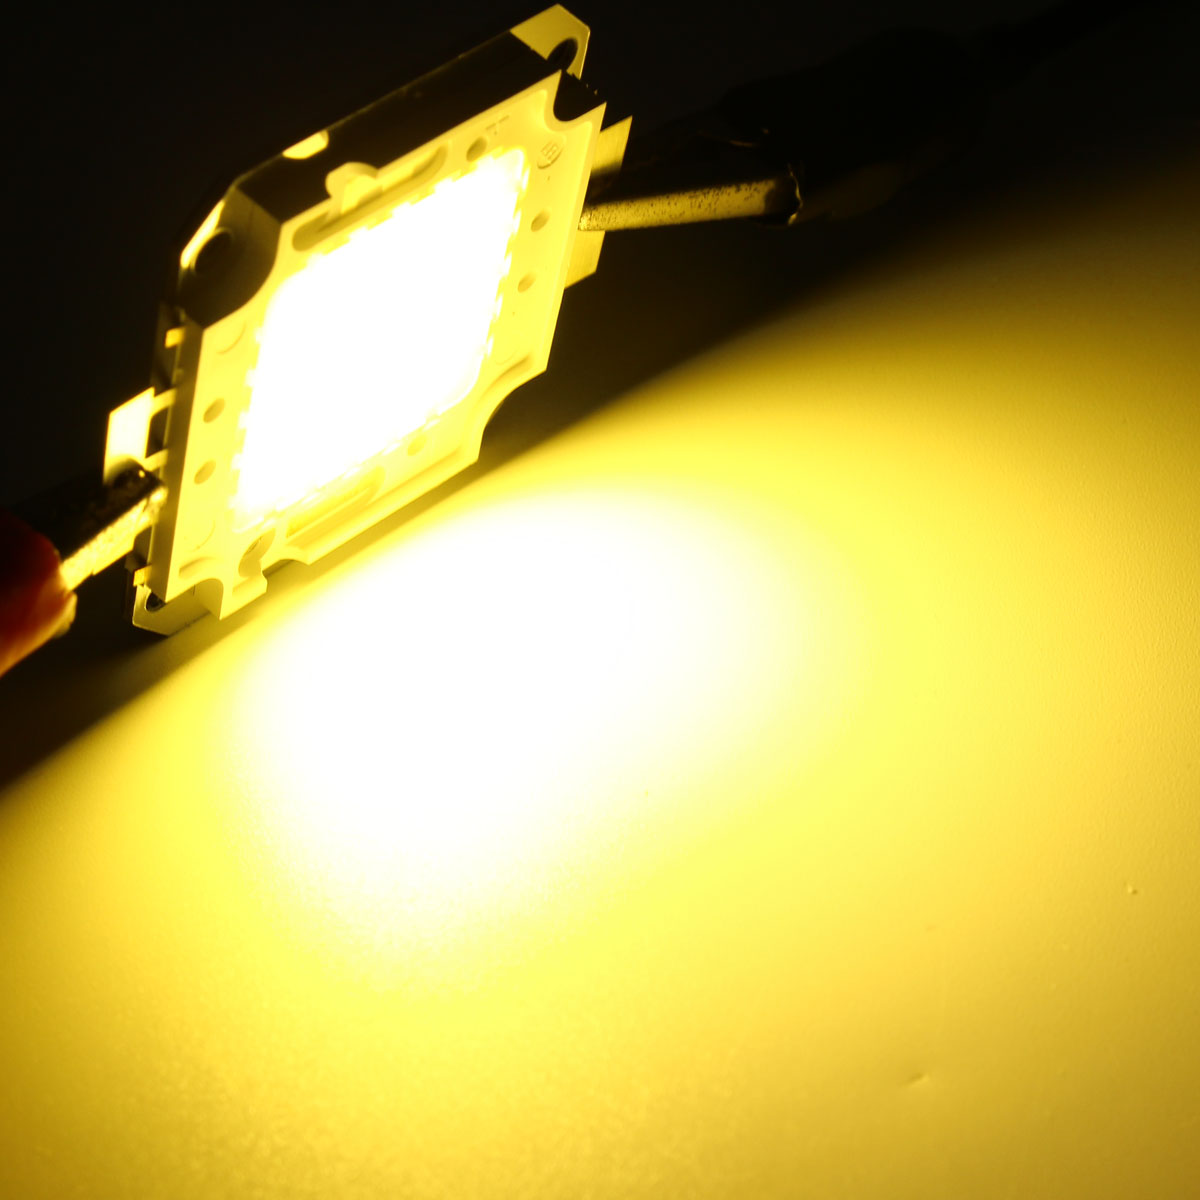 AC85-265V 33W Waterproof High Power LED Driver Supply SMD Chip for Flood Light